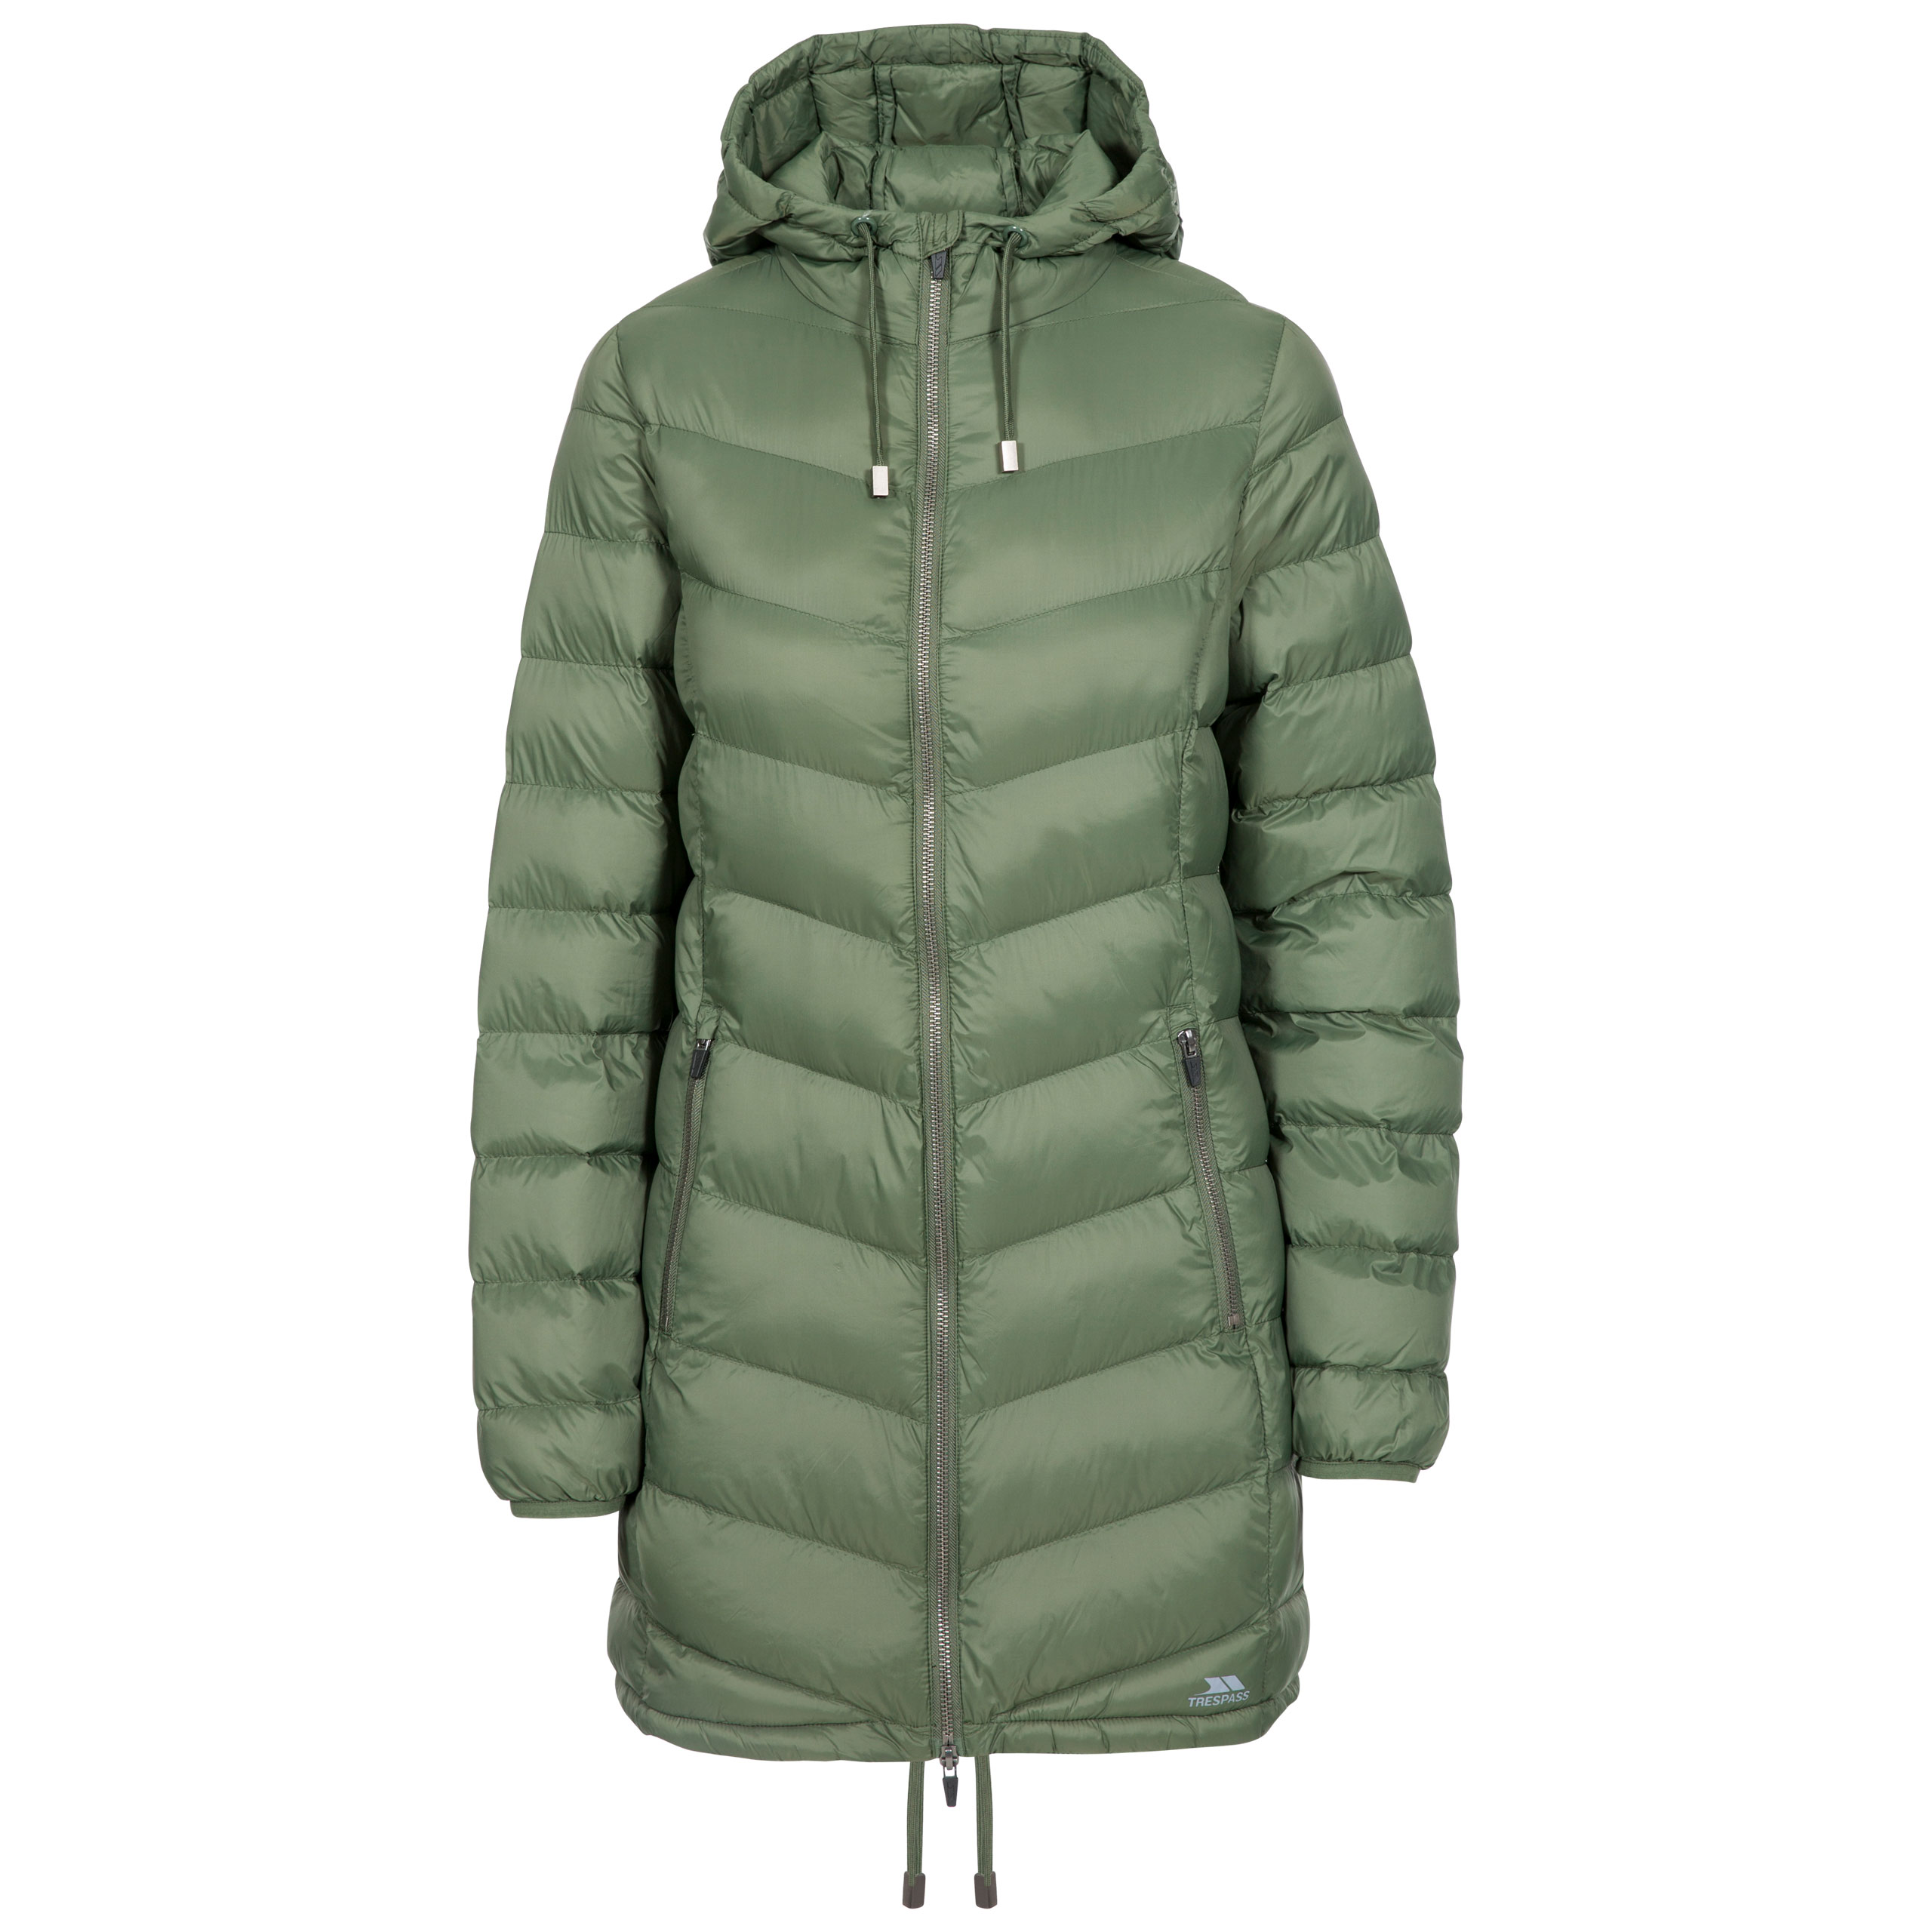 Trespass-Rianna-Womens-Padded-Jacket-Puffer-Coat-With-Hood-For-Ladies thumbnail 13